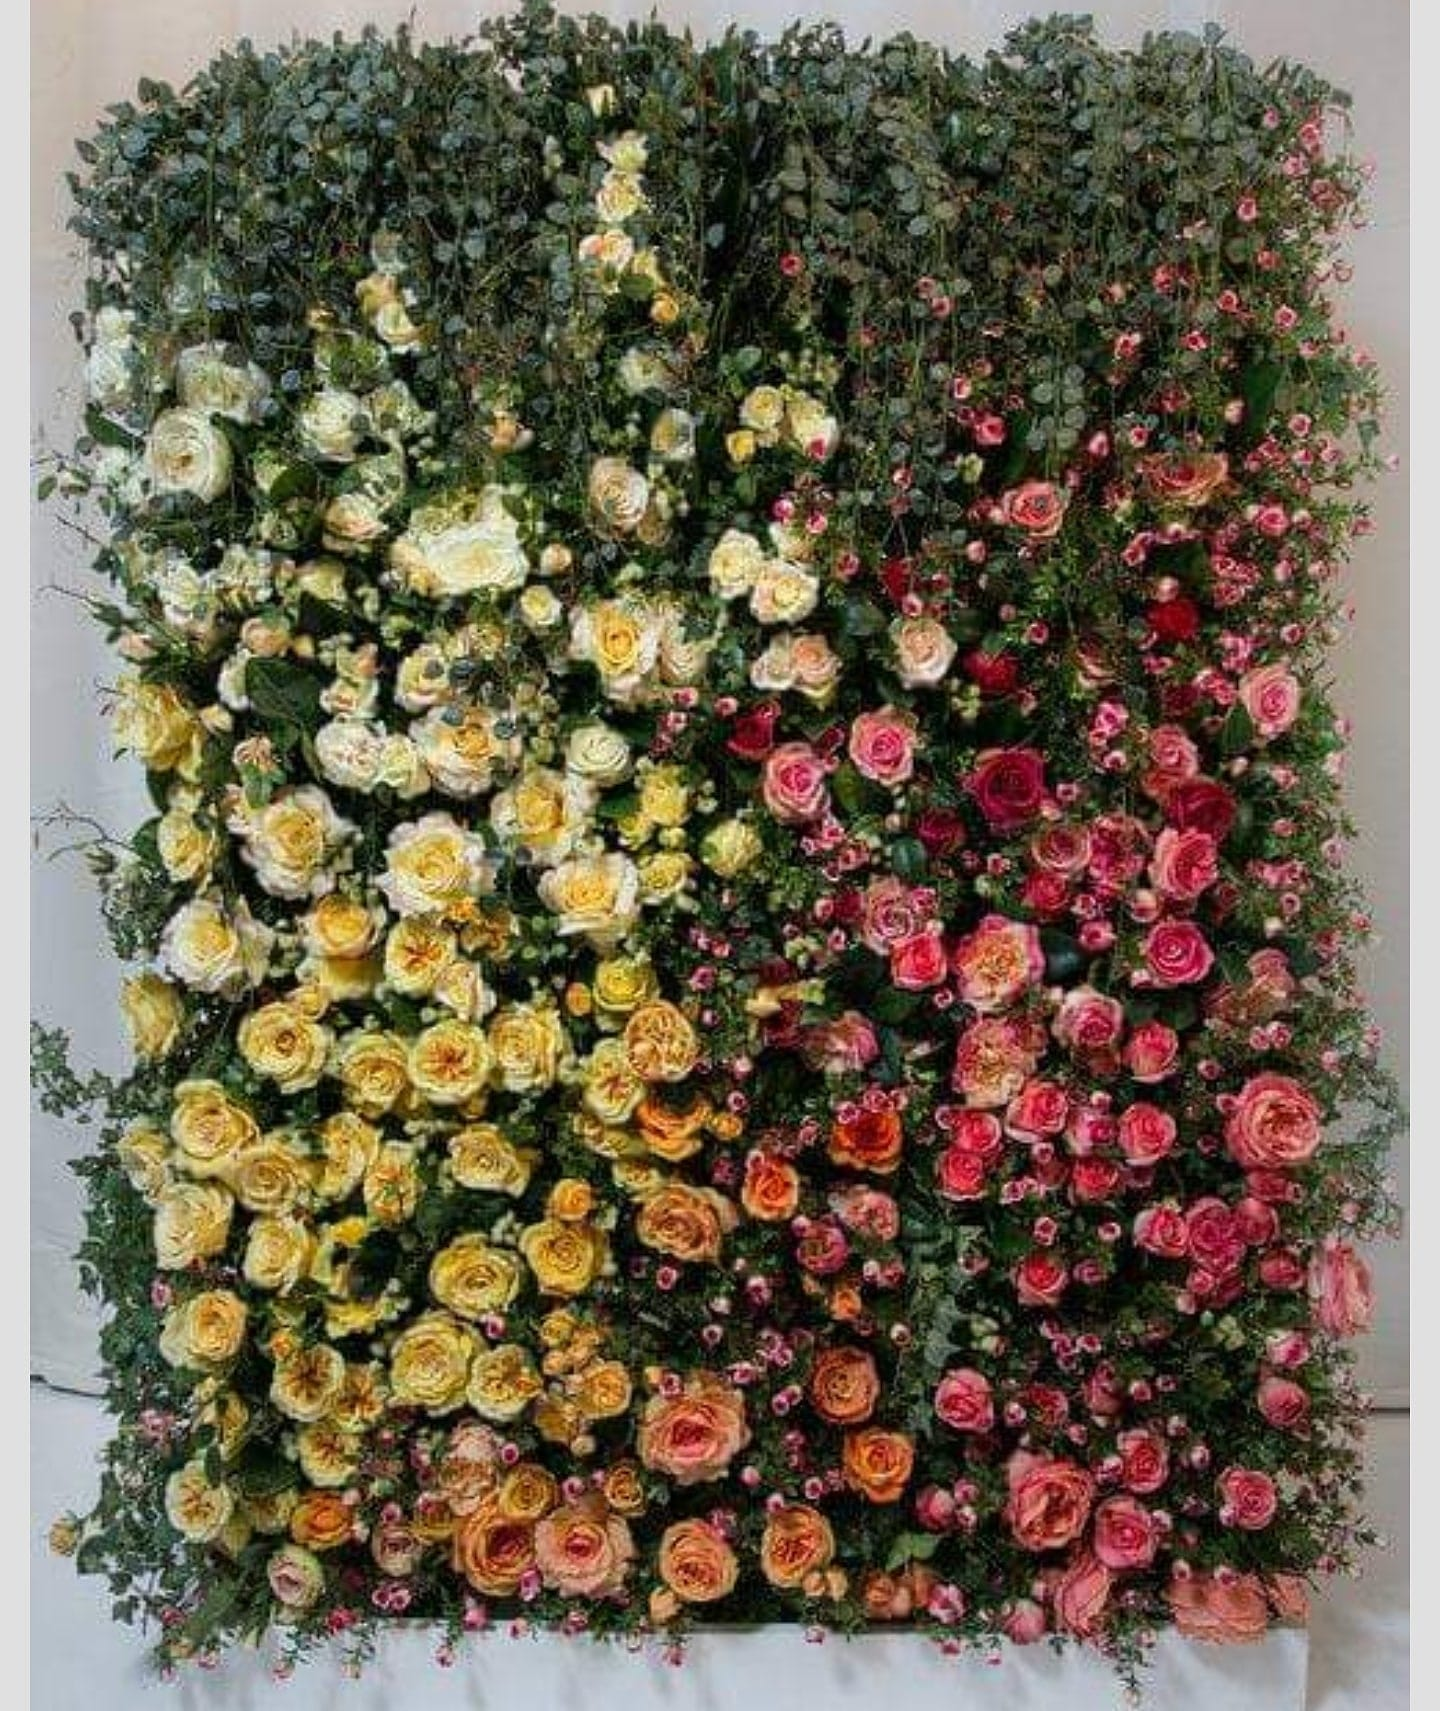 The Floral Standard